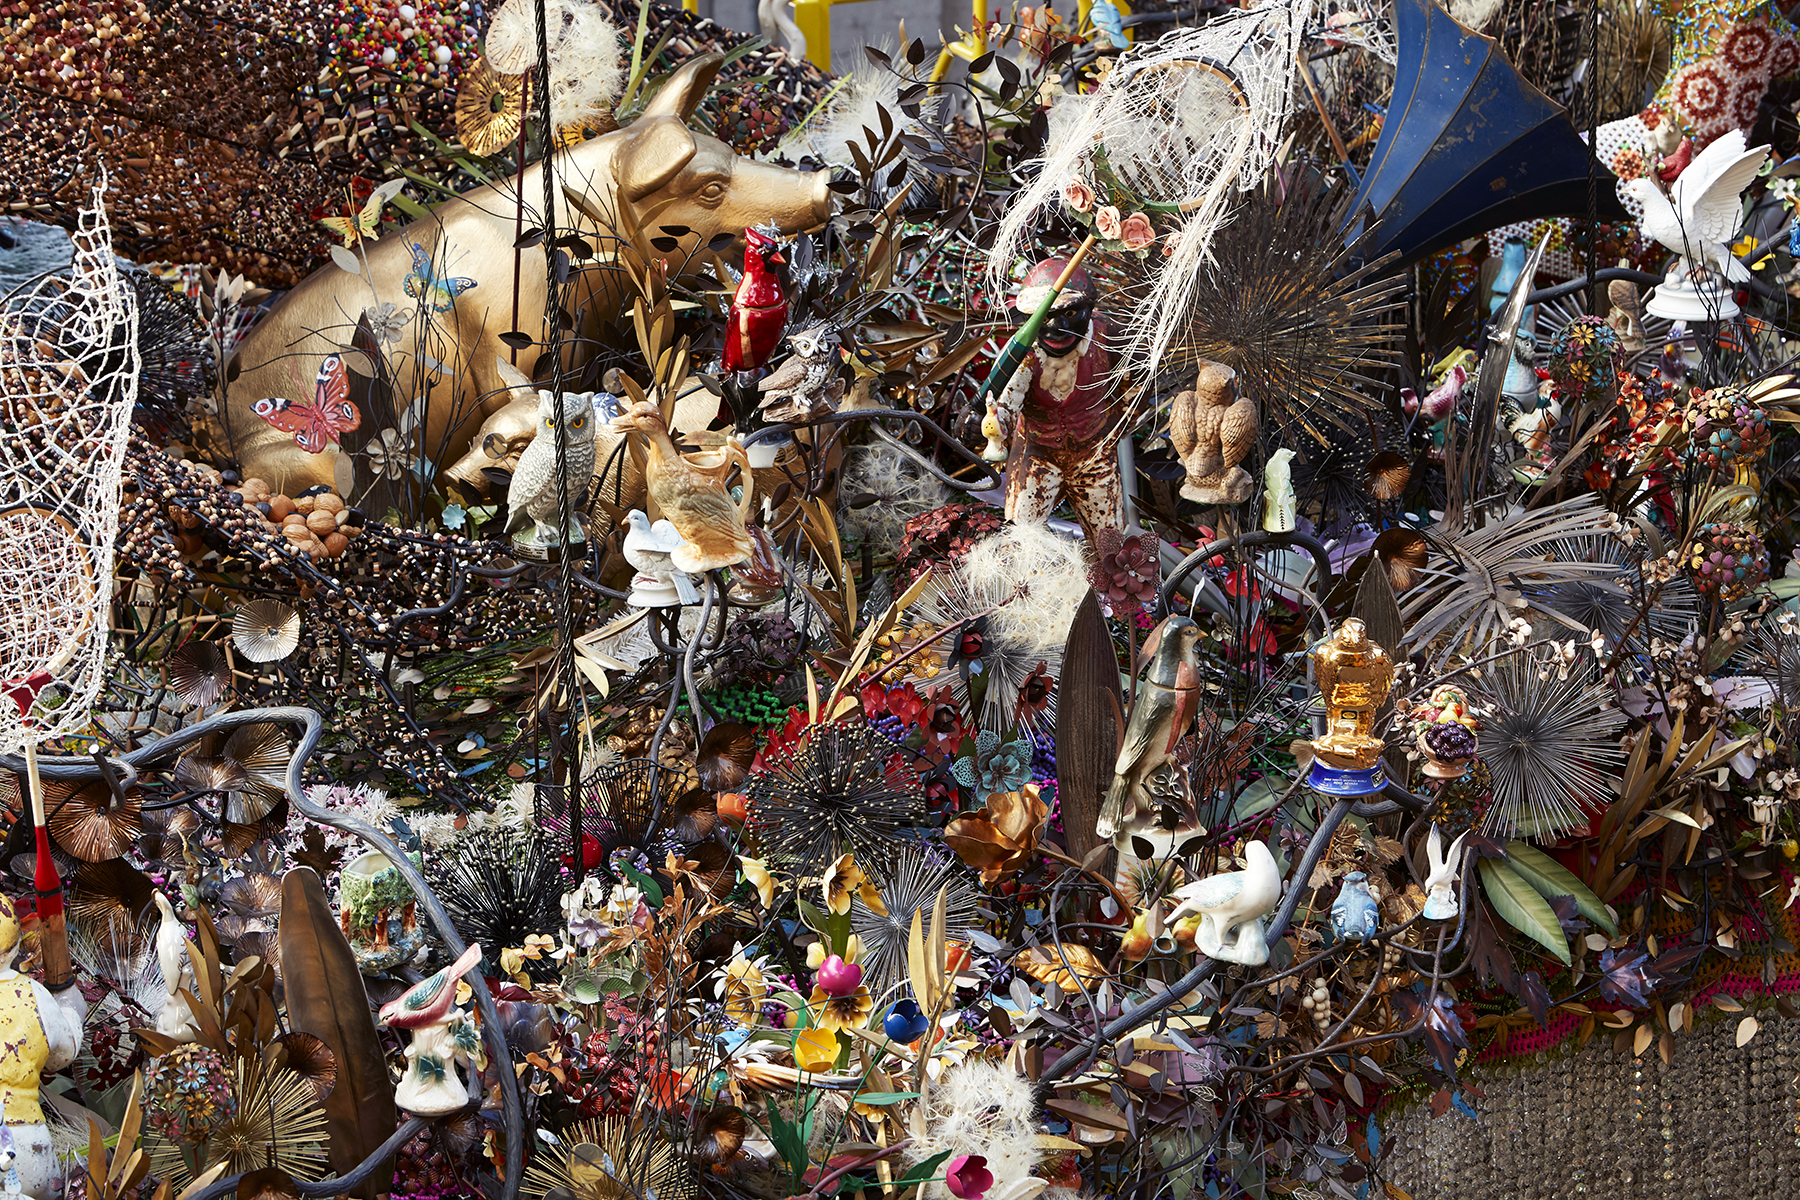 Nick-Cave-UNTIL-Carriageworks-Image-Zan-Wimberley-2018-6.jpg